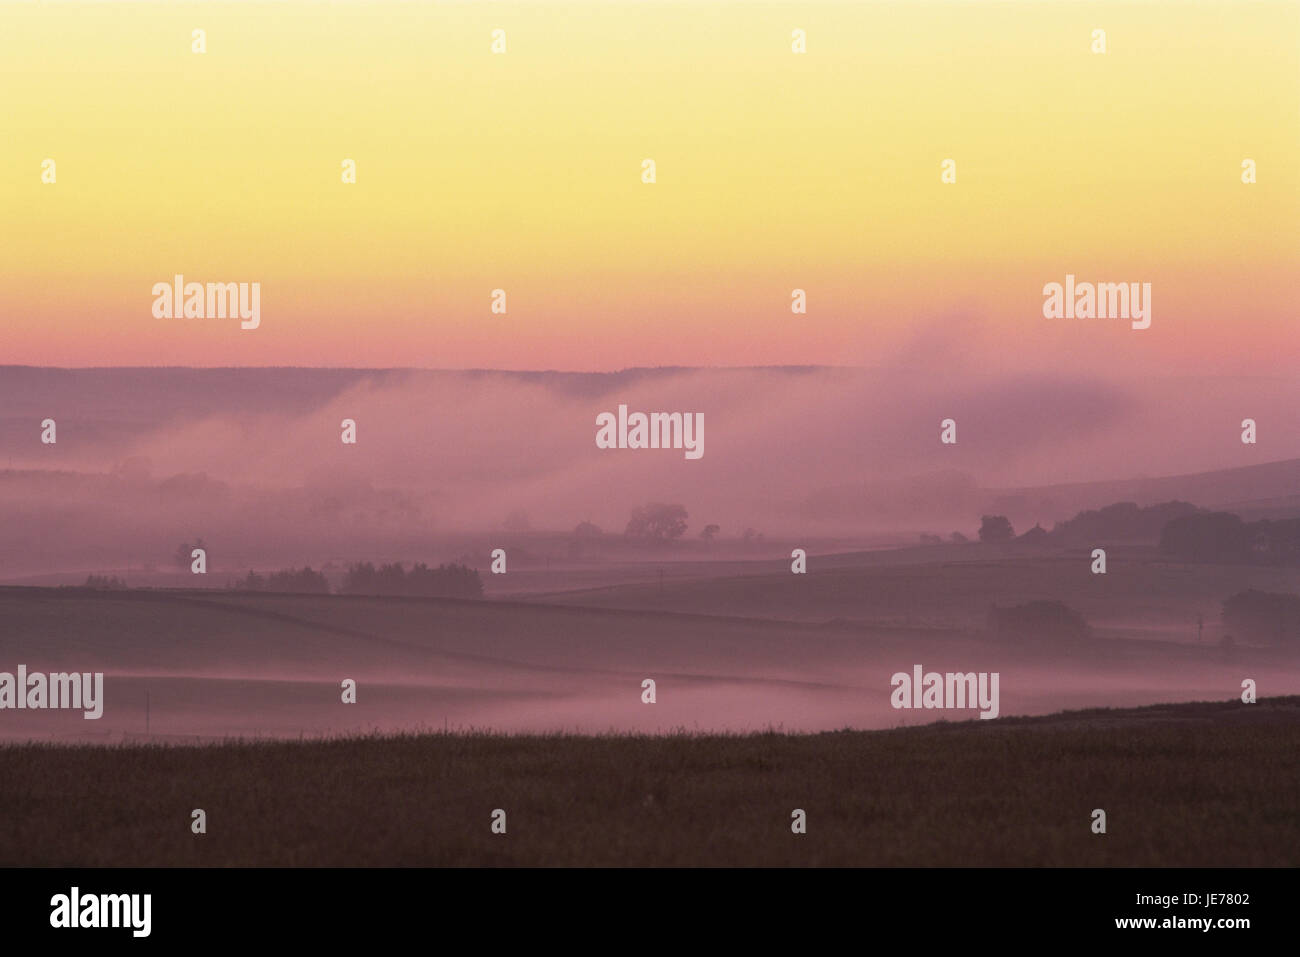 Great Britain, England, Northumbria, scenery, fog, red sky, Europe, Northumberland, width, distance, view, meadows, - Stock Image